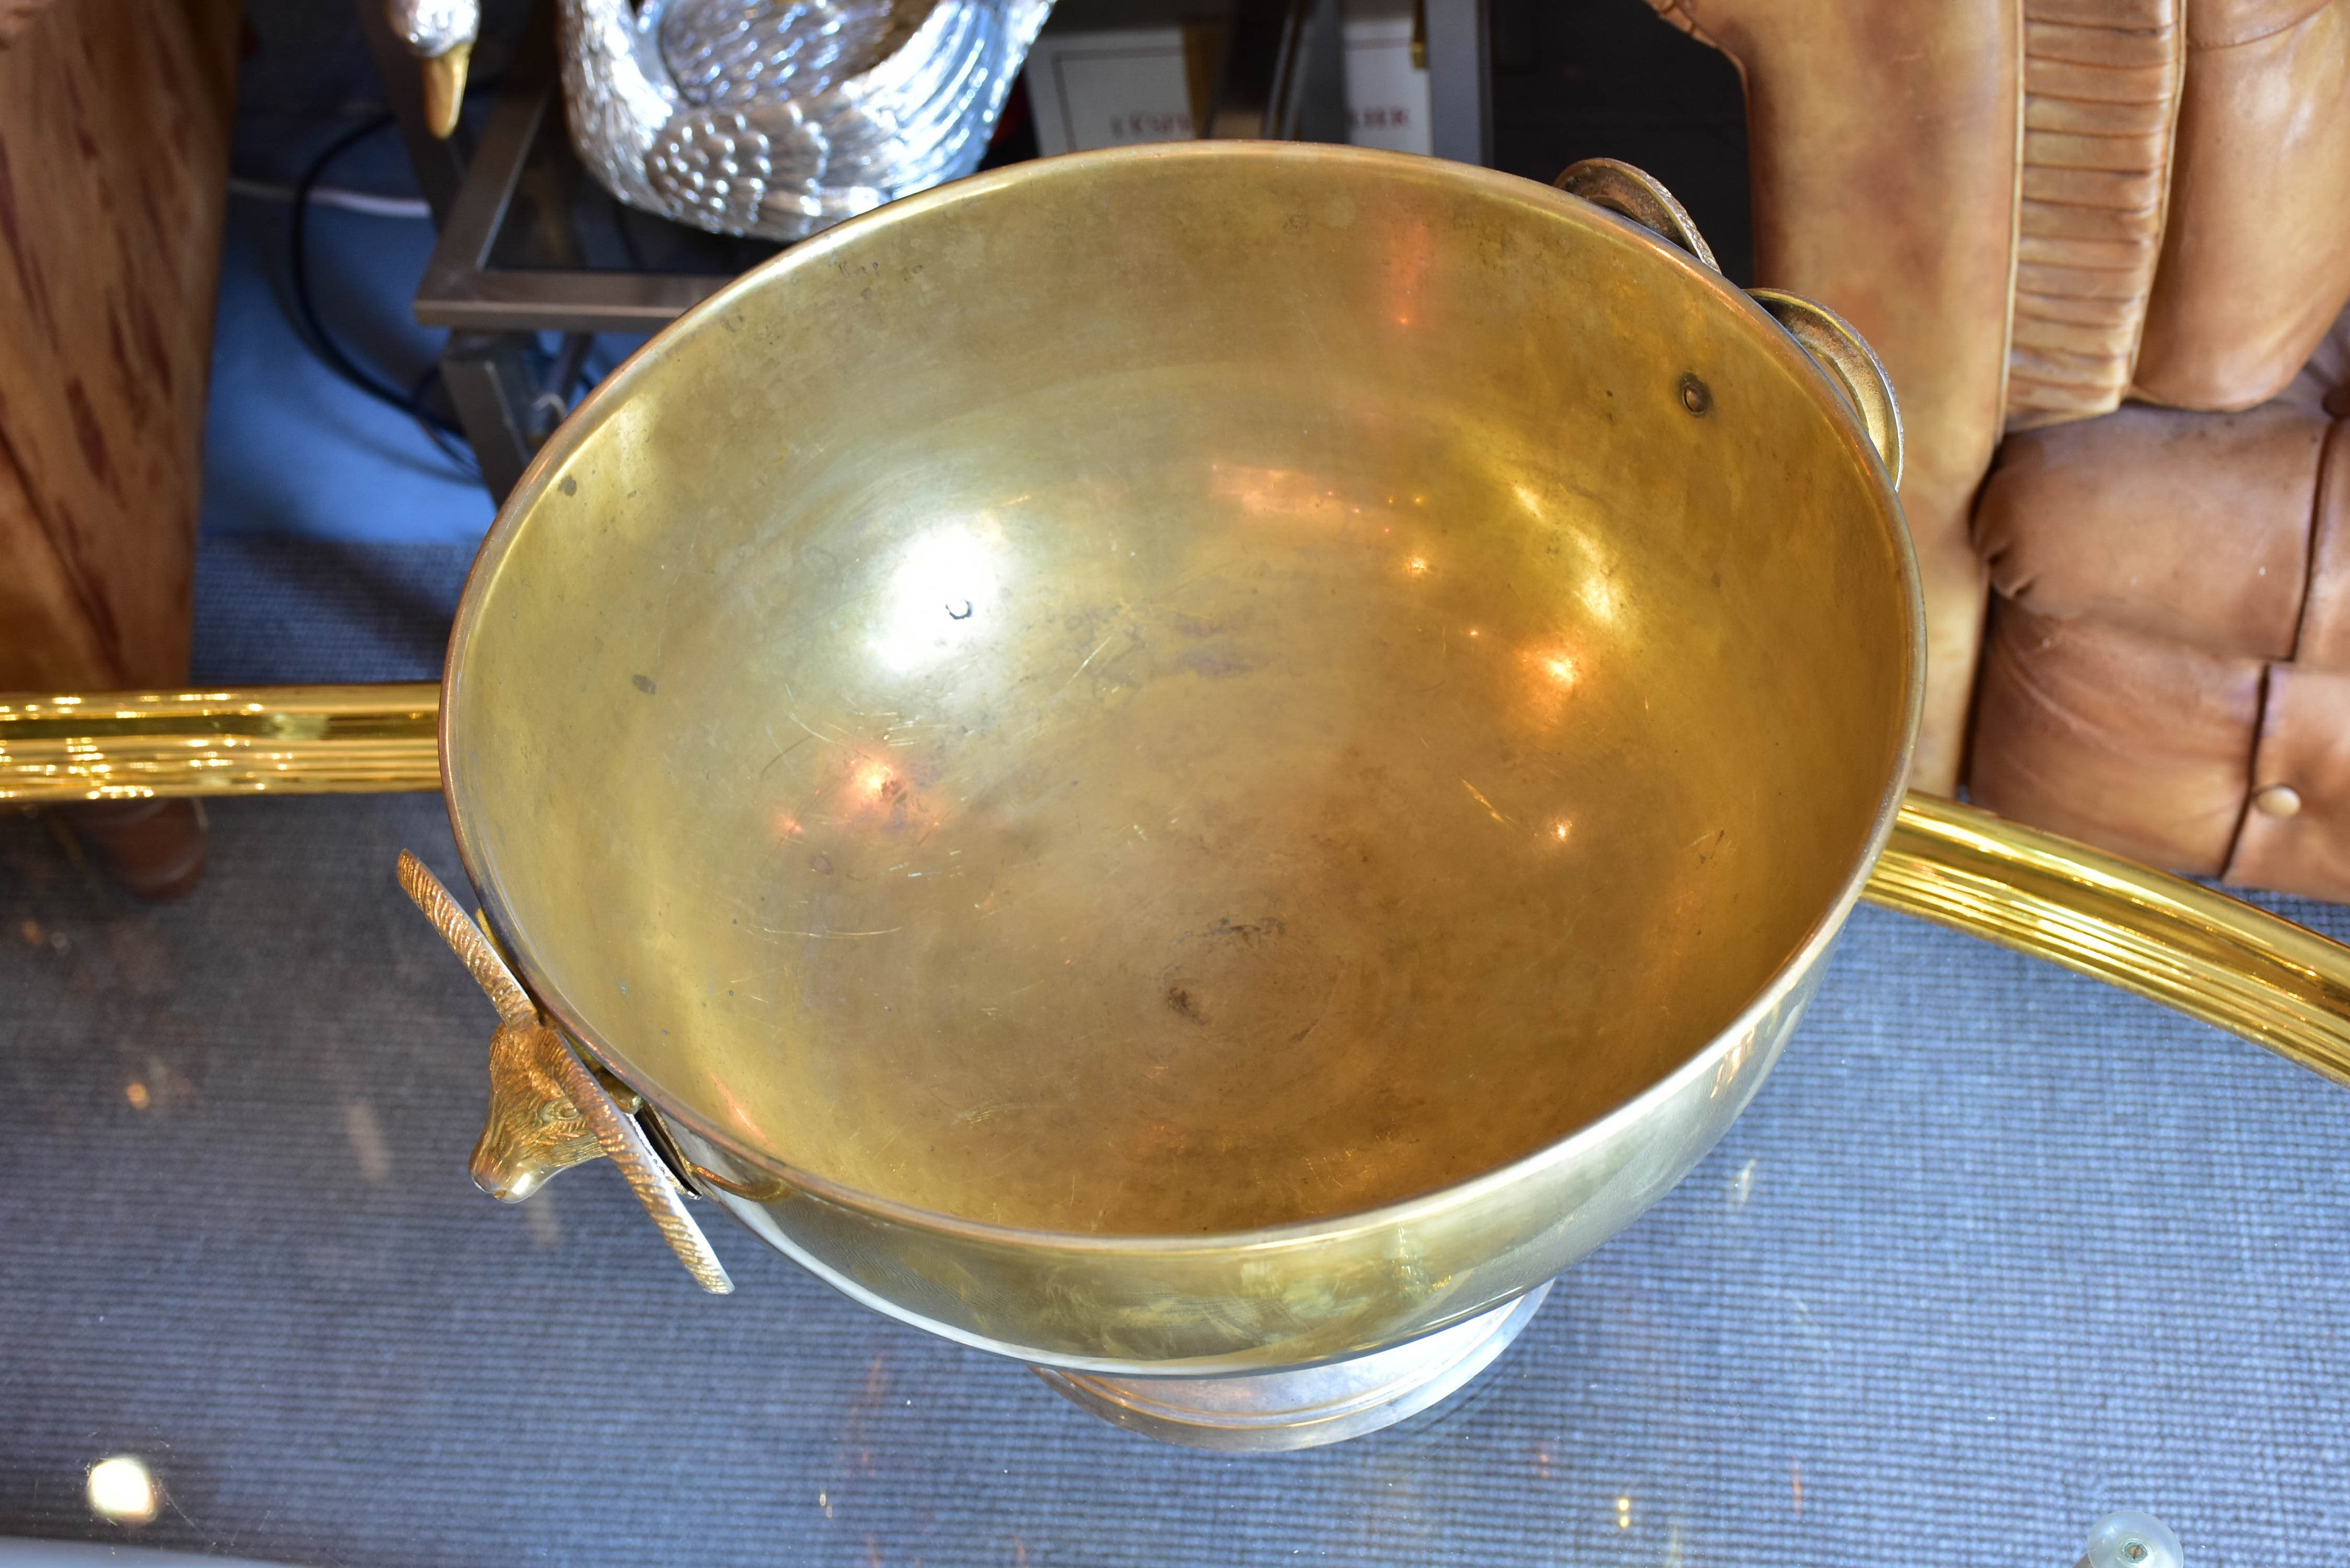 Large vintage Champagne bucket with rams' heads handles